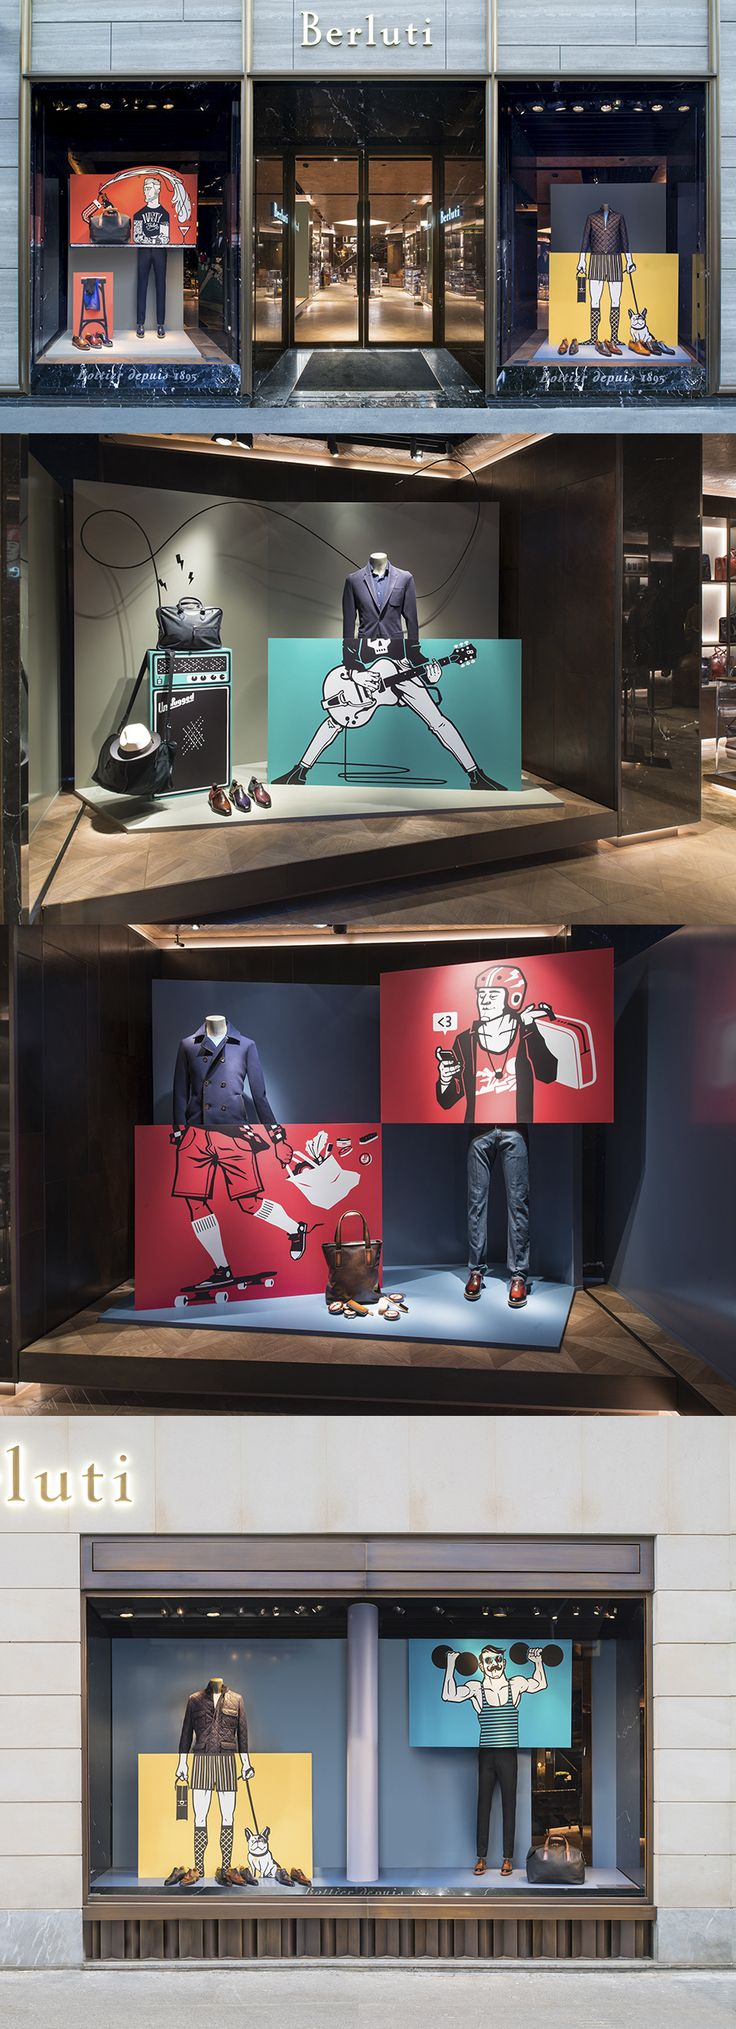 Illustrations for Berluti store´s window display